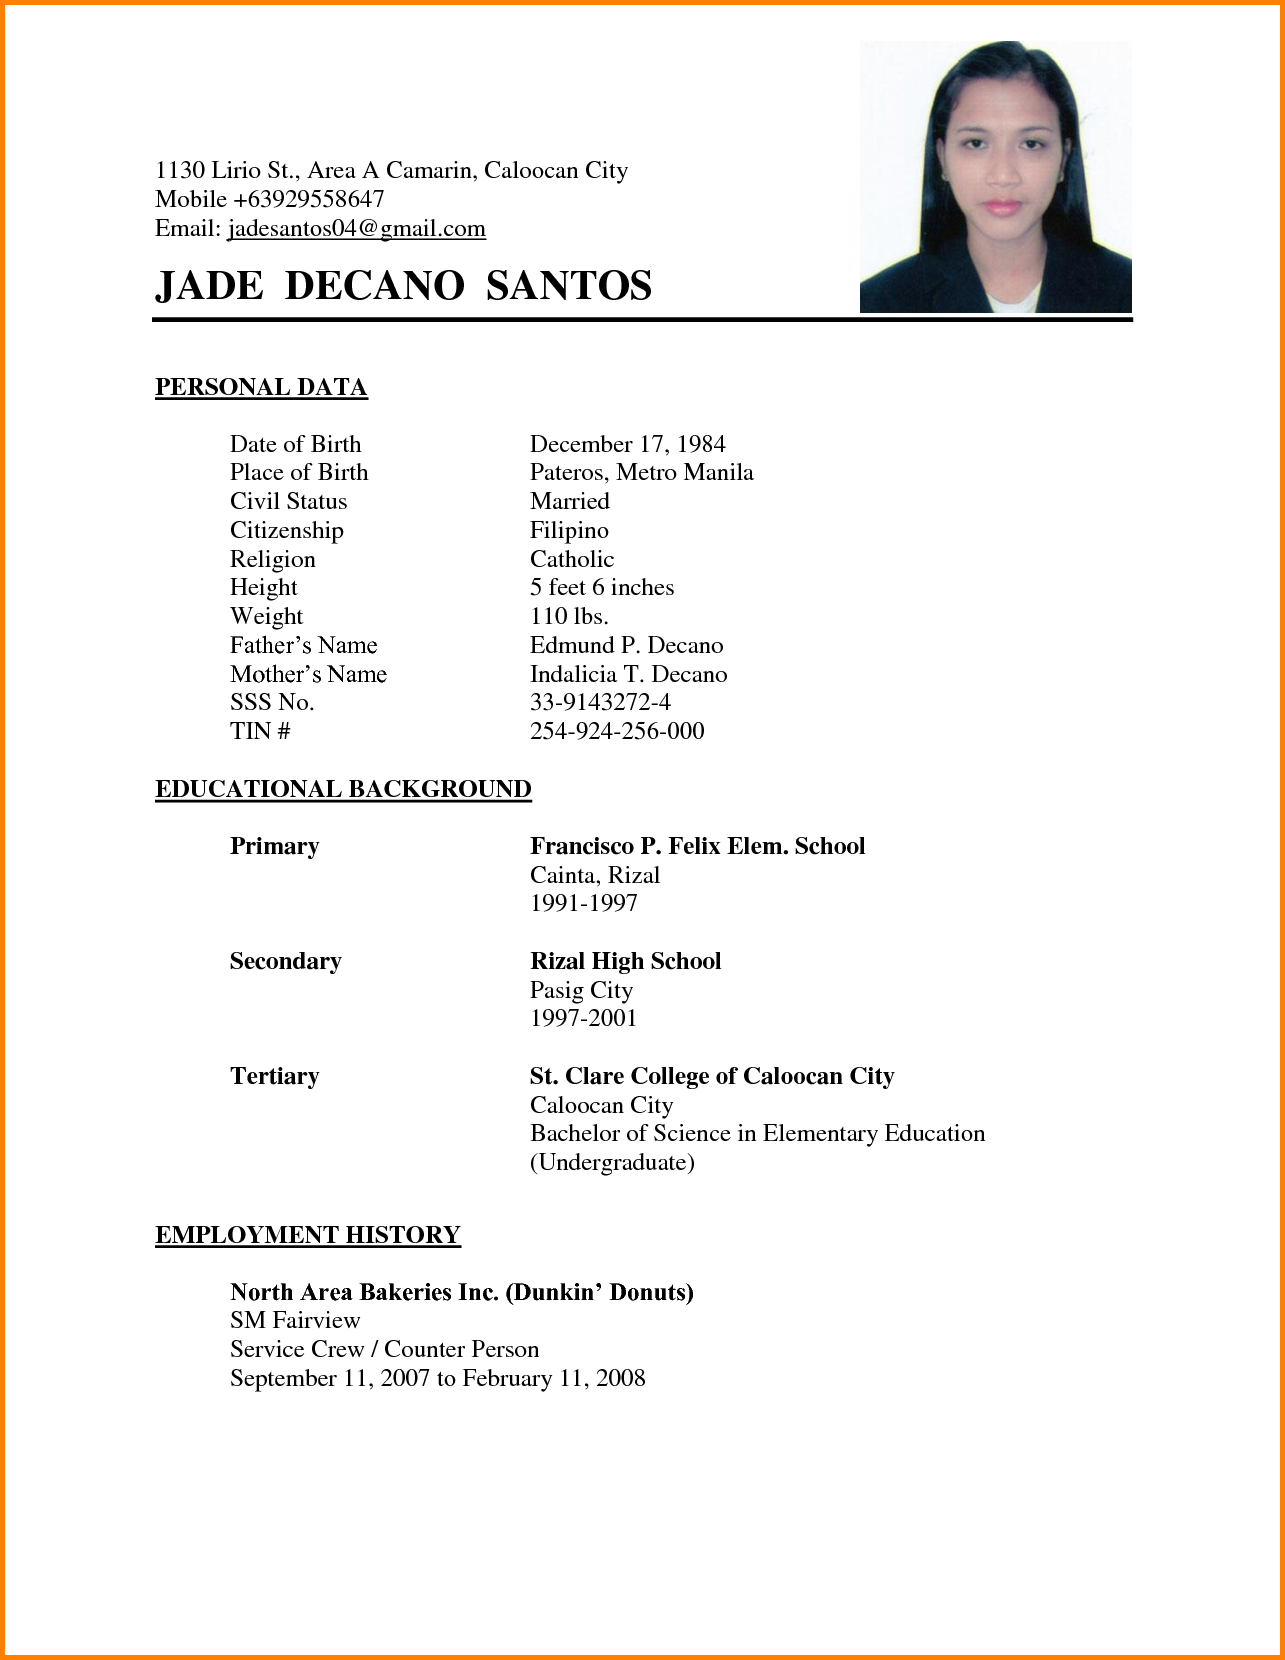 Resume examples philippines resume ixiplay free resume samples resume examples philippines resume ixiplay free resume samples simple resume sample philippines thecheapjerseys Choice Image